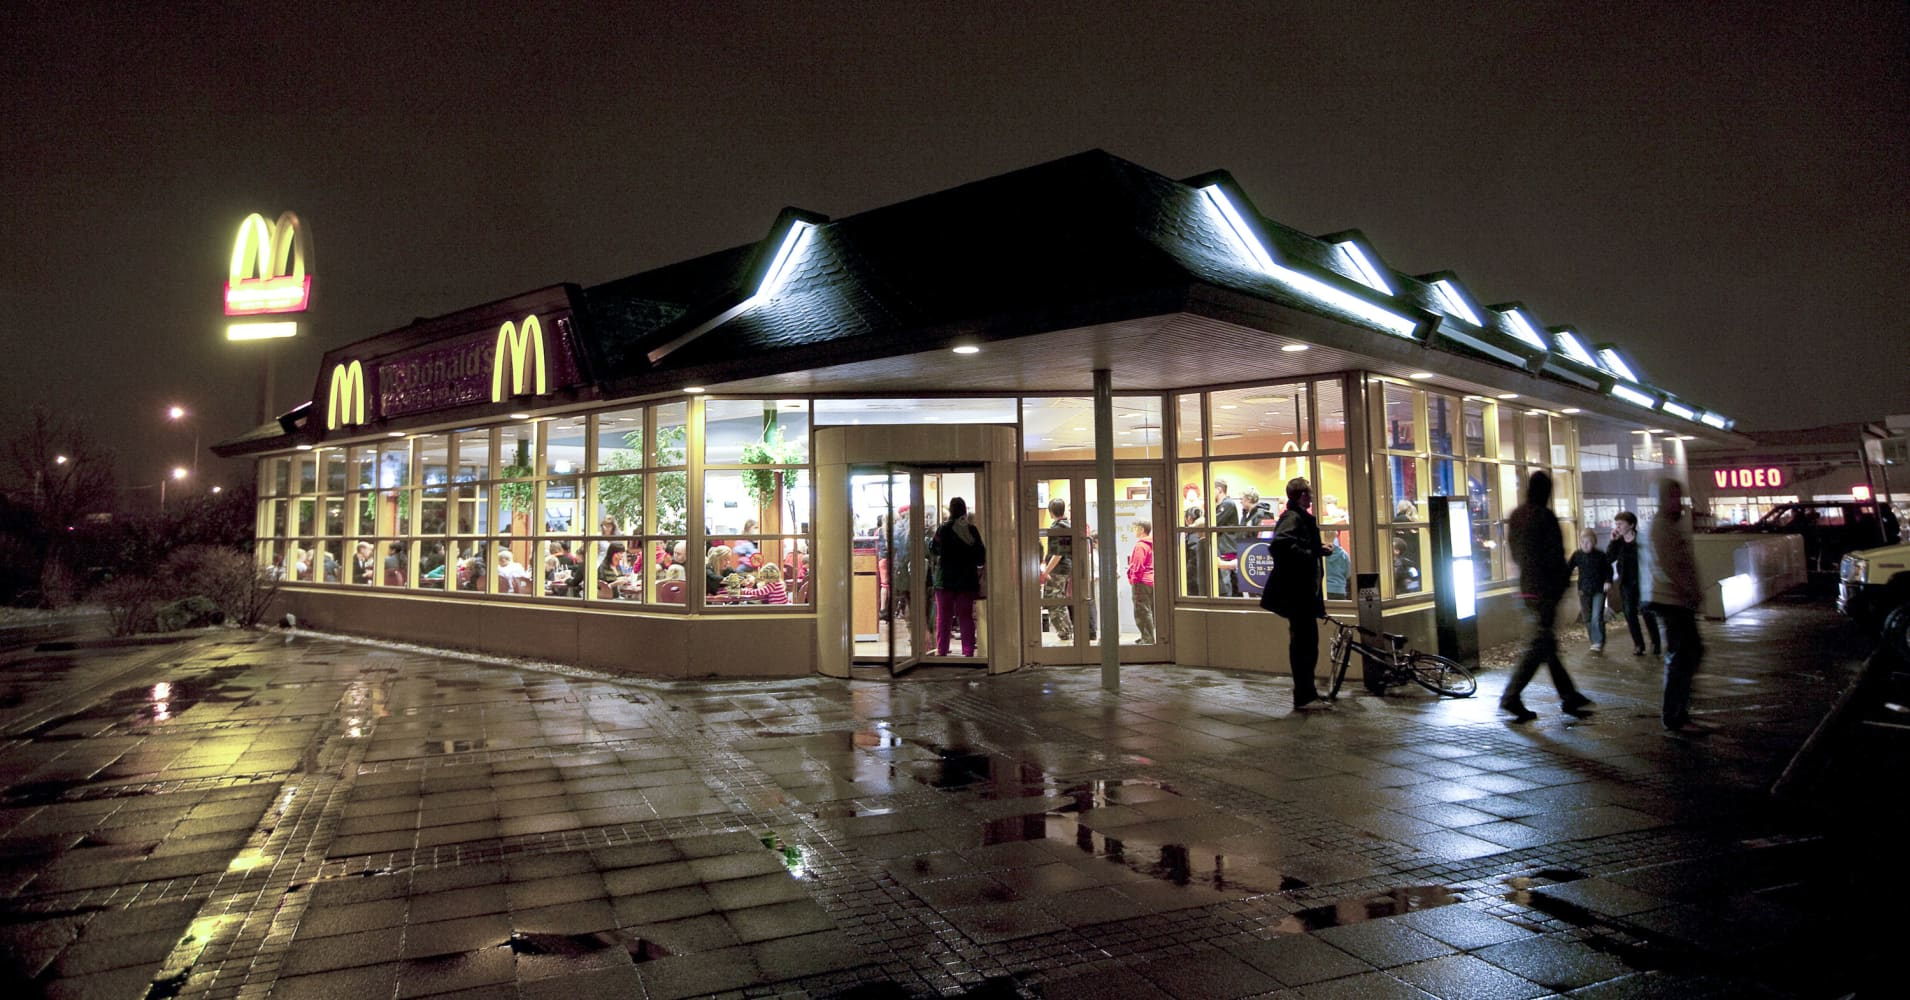 Here's what went wrong with McDonald's in Iceland